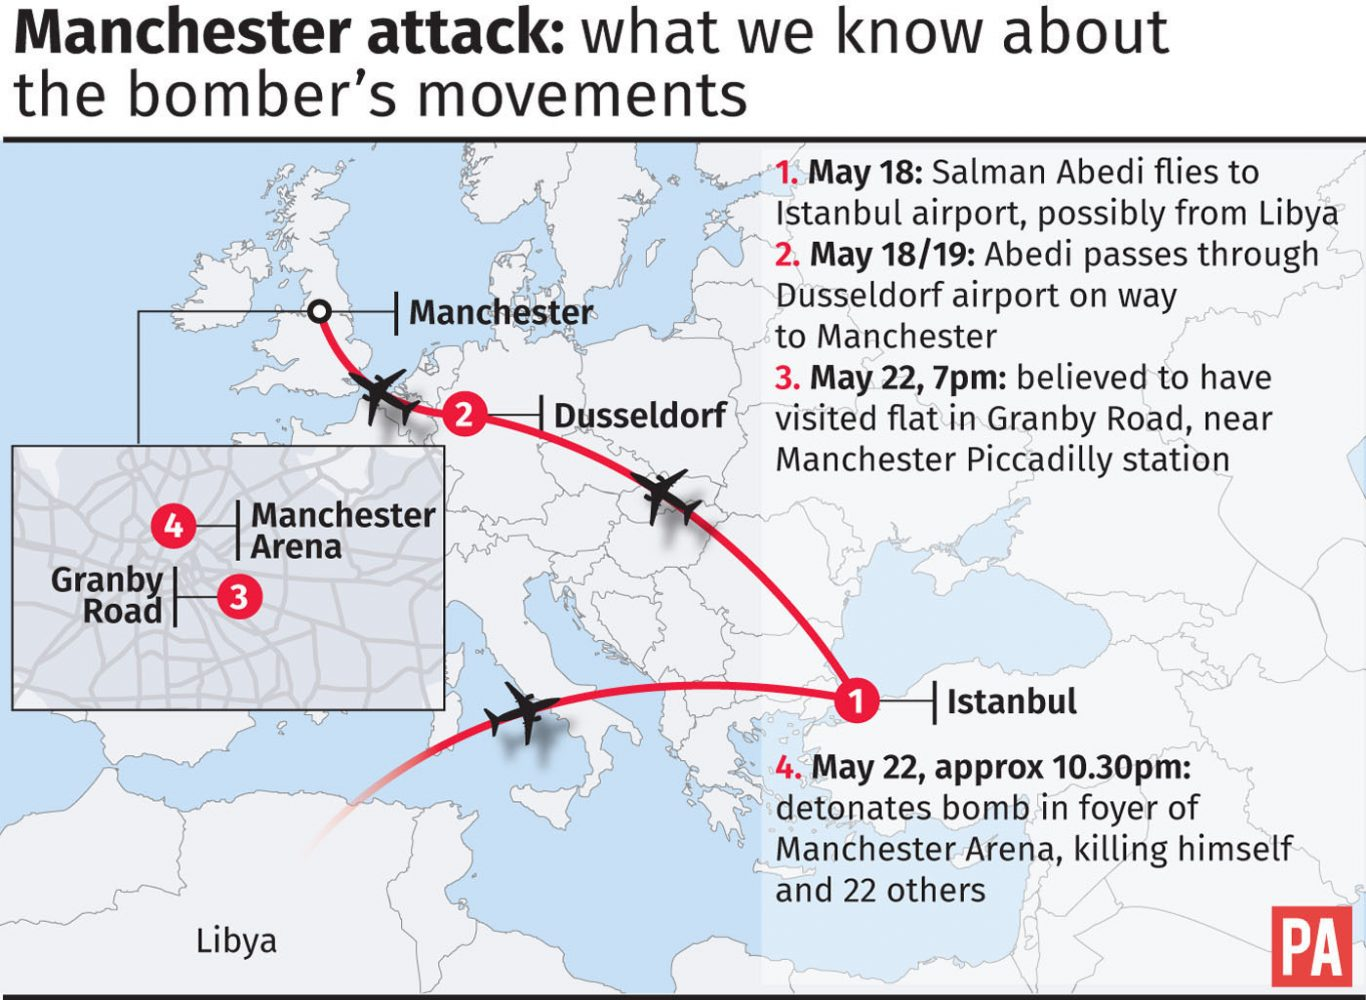 United Kingdom police say they have 'hands around' some Manchester attack network